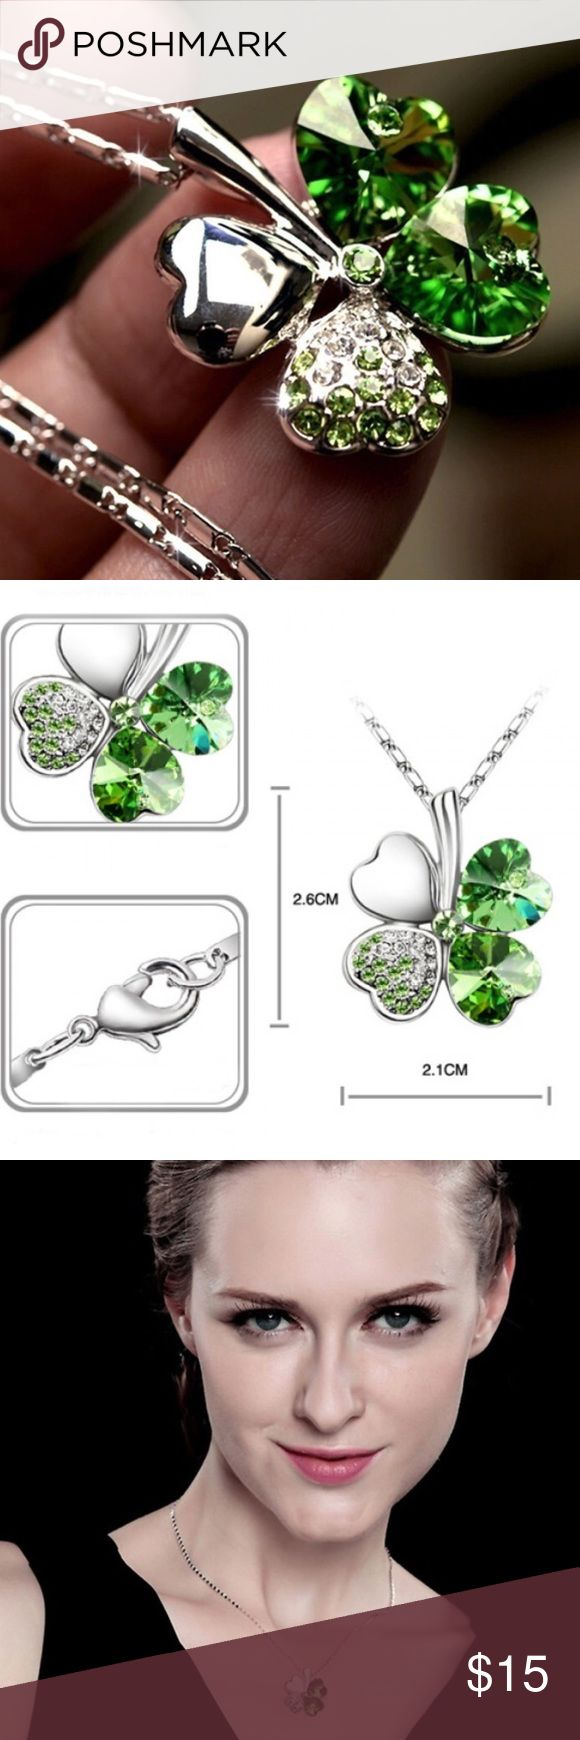 Four Leaf Clover Necklace- Green Four leaf clover necklace is beautifully set with heart shaped crystals and 23 gradual color Czech crystals. Designed with 4 heart shaped clover leaves in wishing best luck to the wearer. Intricate high polish creates a glamorous reflection and makes this four leaf clover necklace seek attention. Material: Platinum plated, Gem type: CZ Austrian crystal, Chain length: 43cm, NWT Jewelry Necklaces